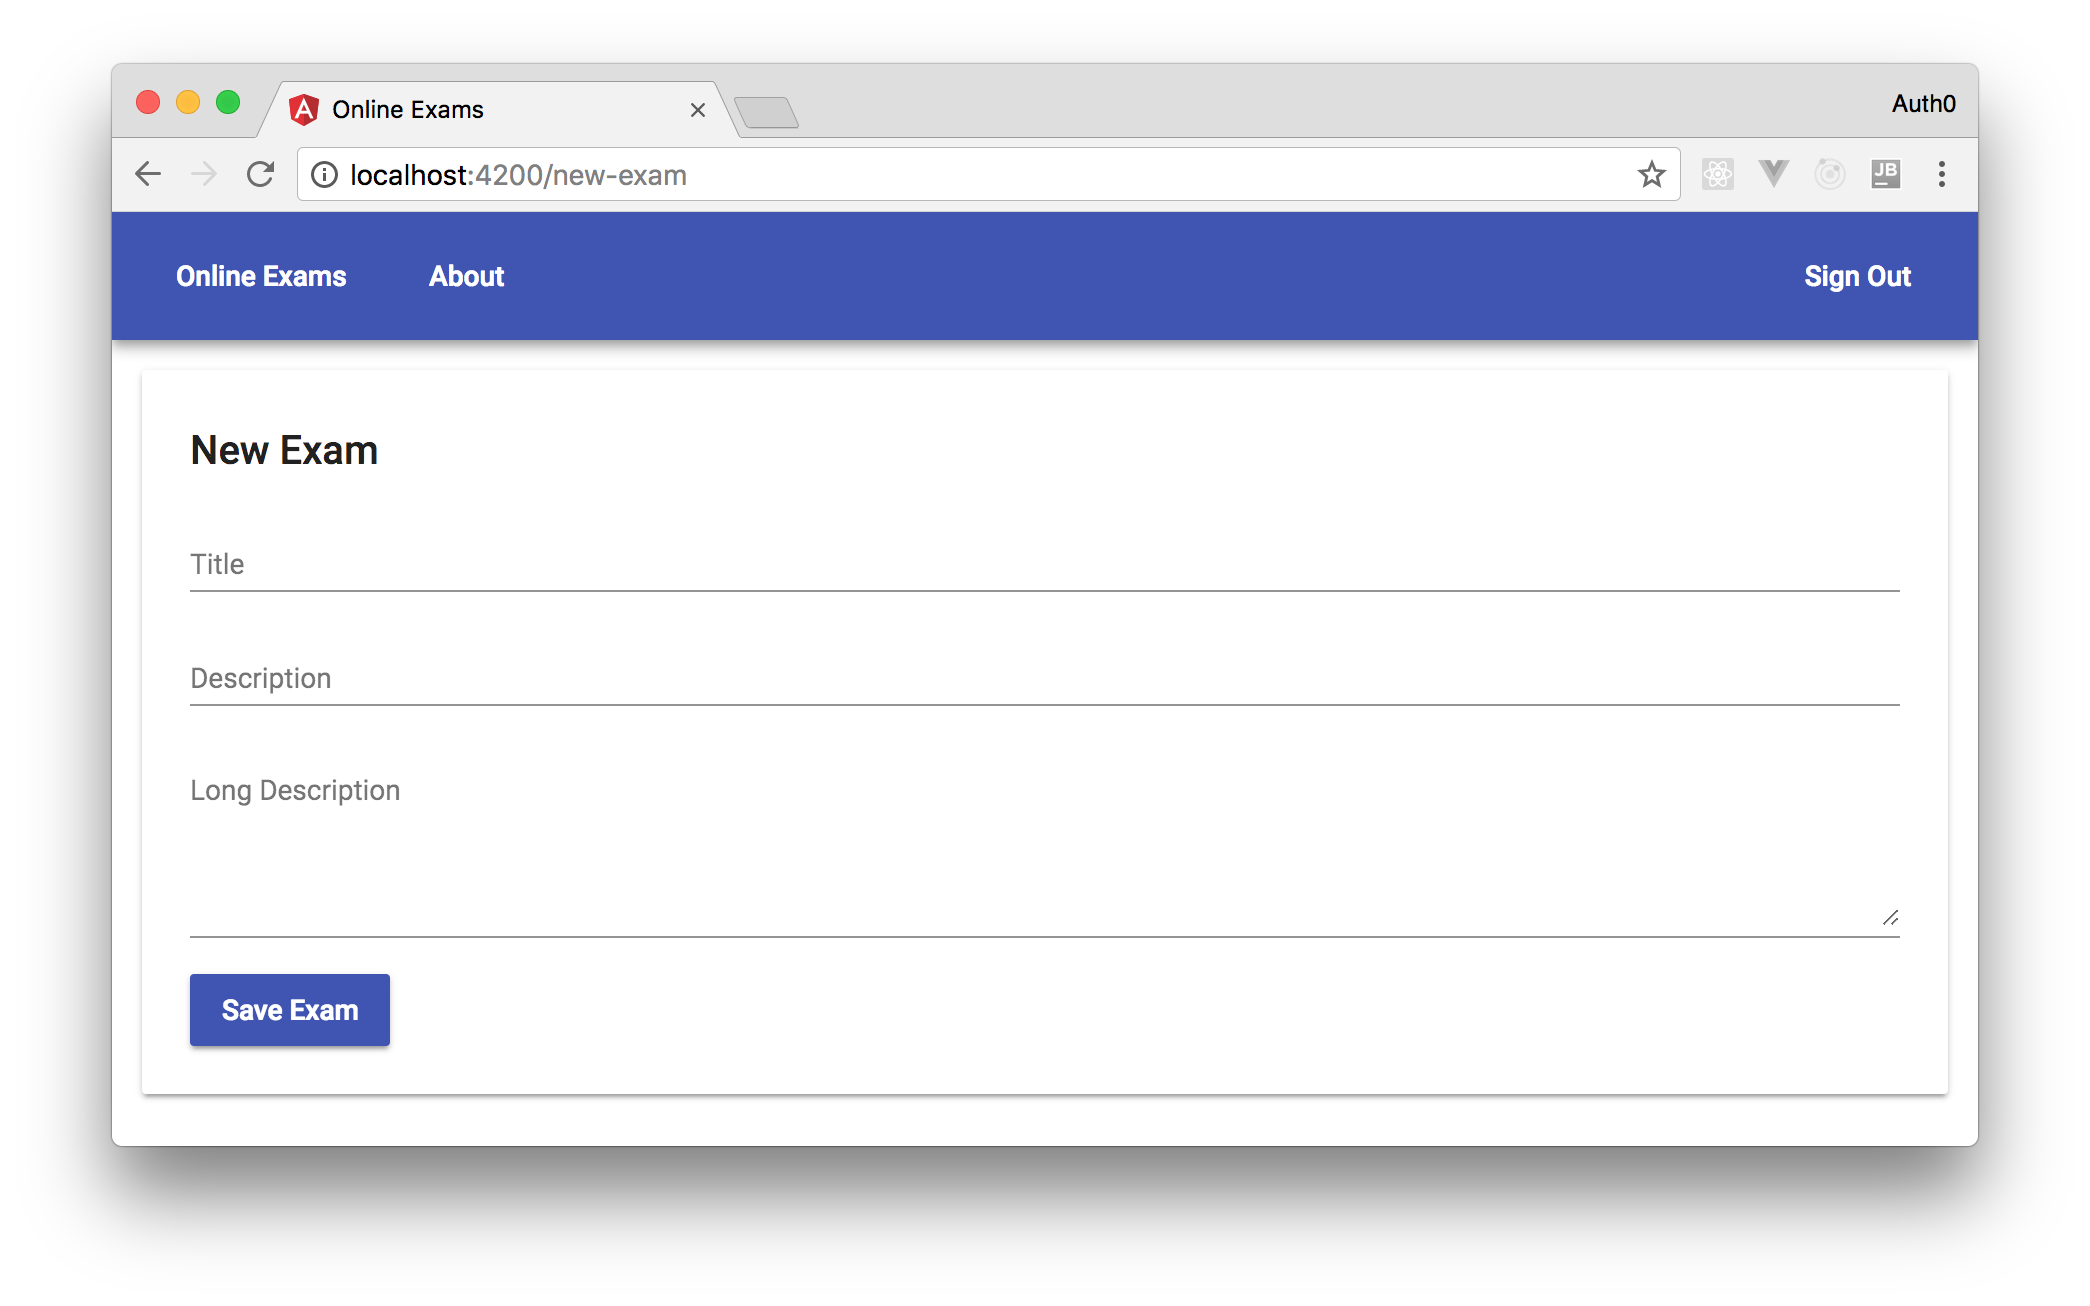 Angular form with Angular Material components.